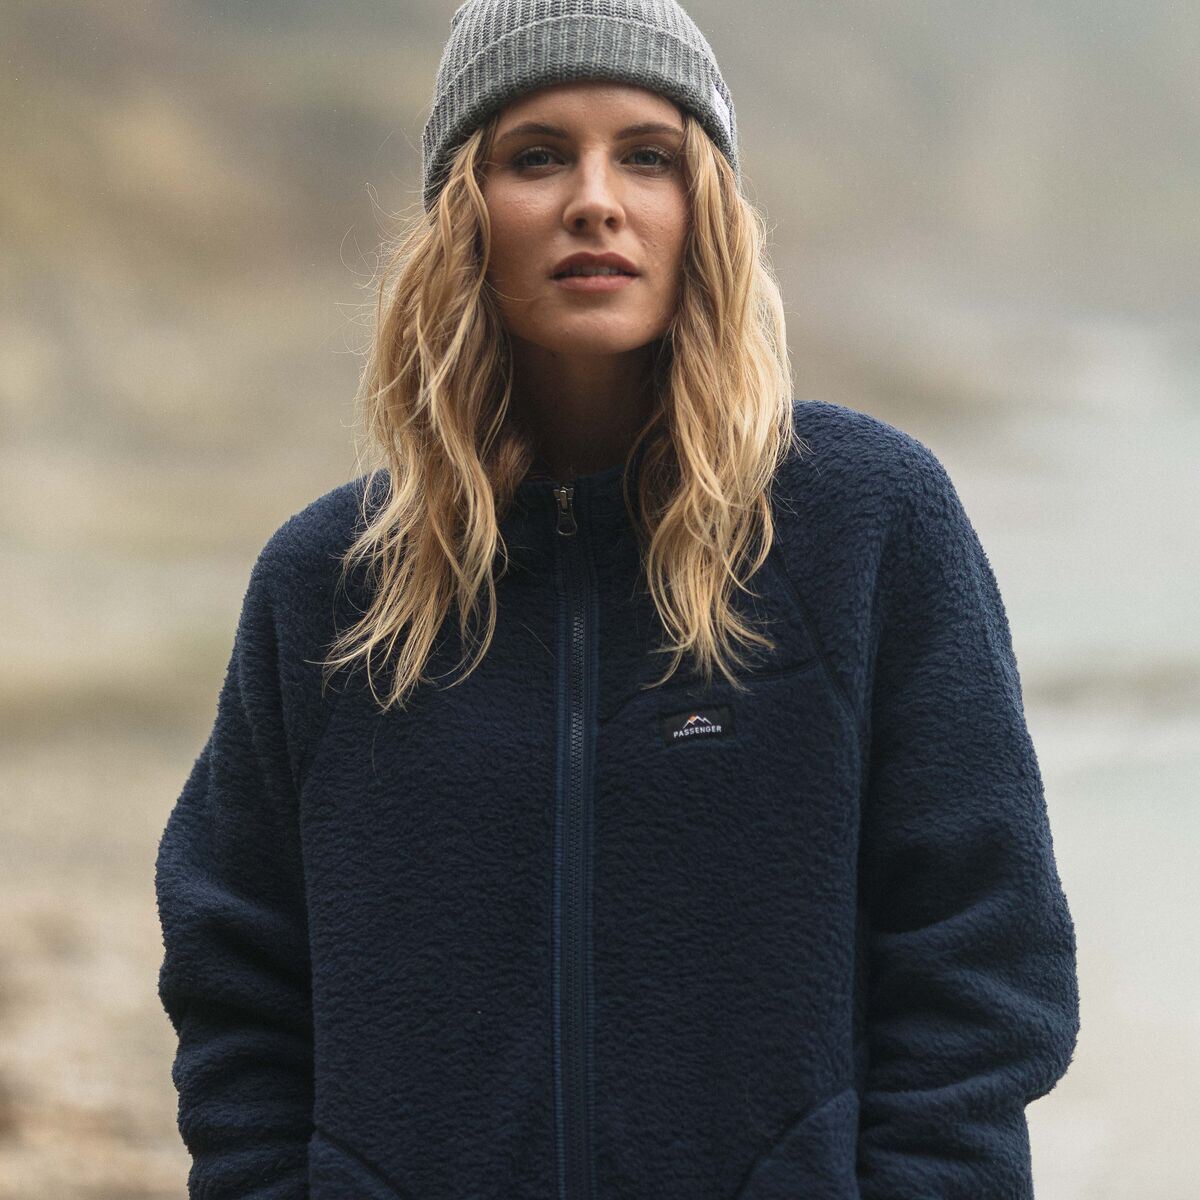 Fairbanks Full Zip Sherpa Fleece - Navy image 2